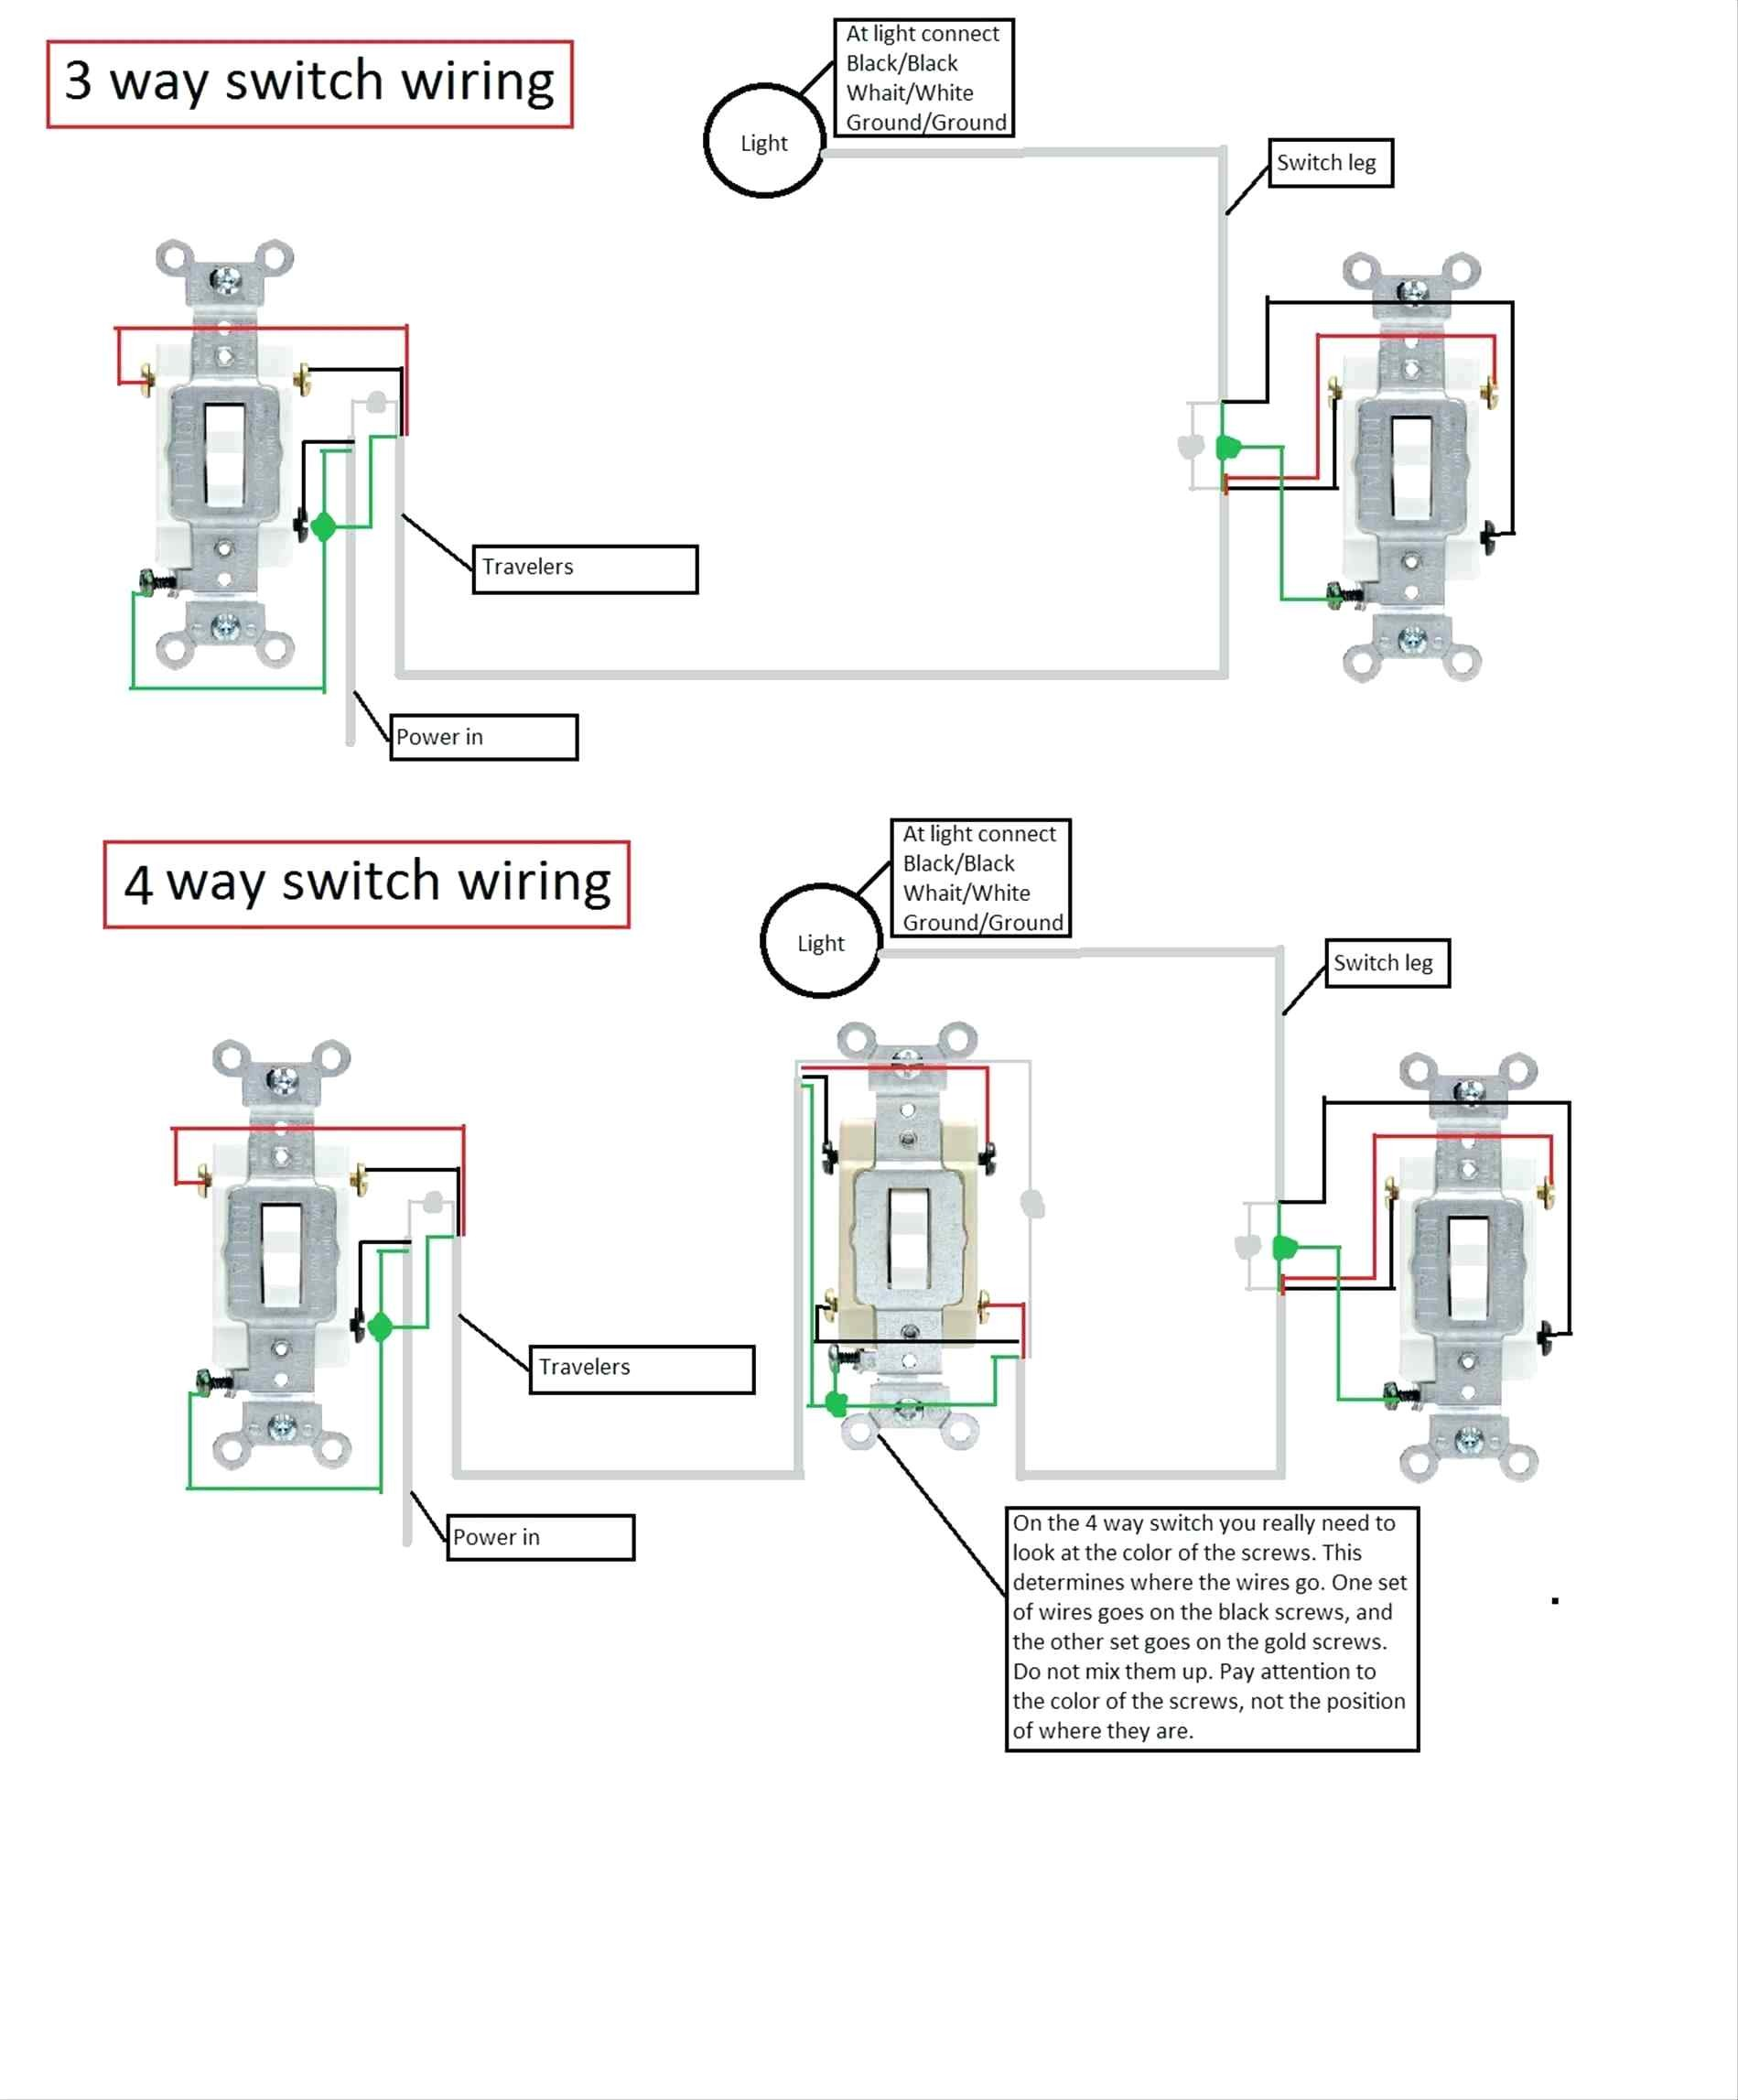 electrical wiring diagram light switch verizon fios home 4 way awesome